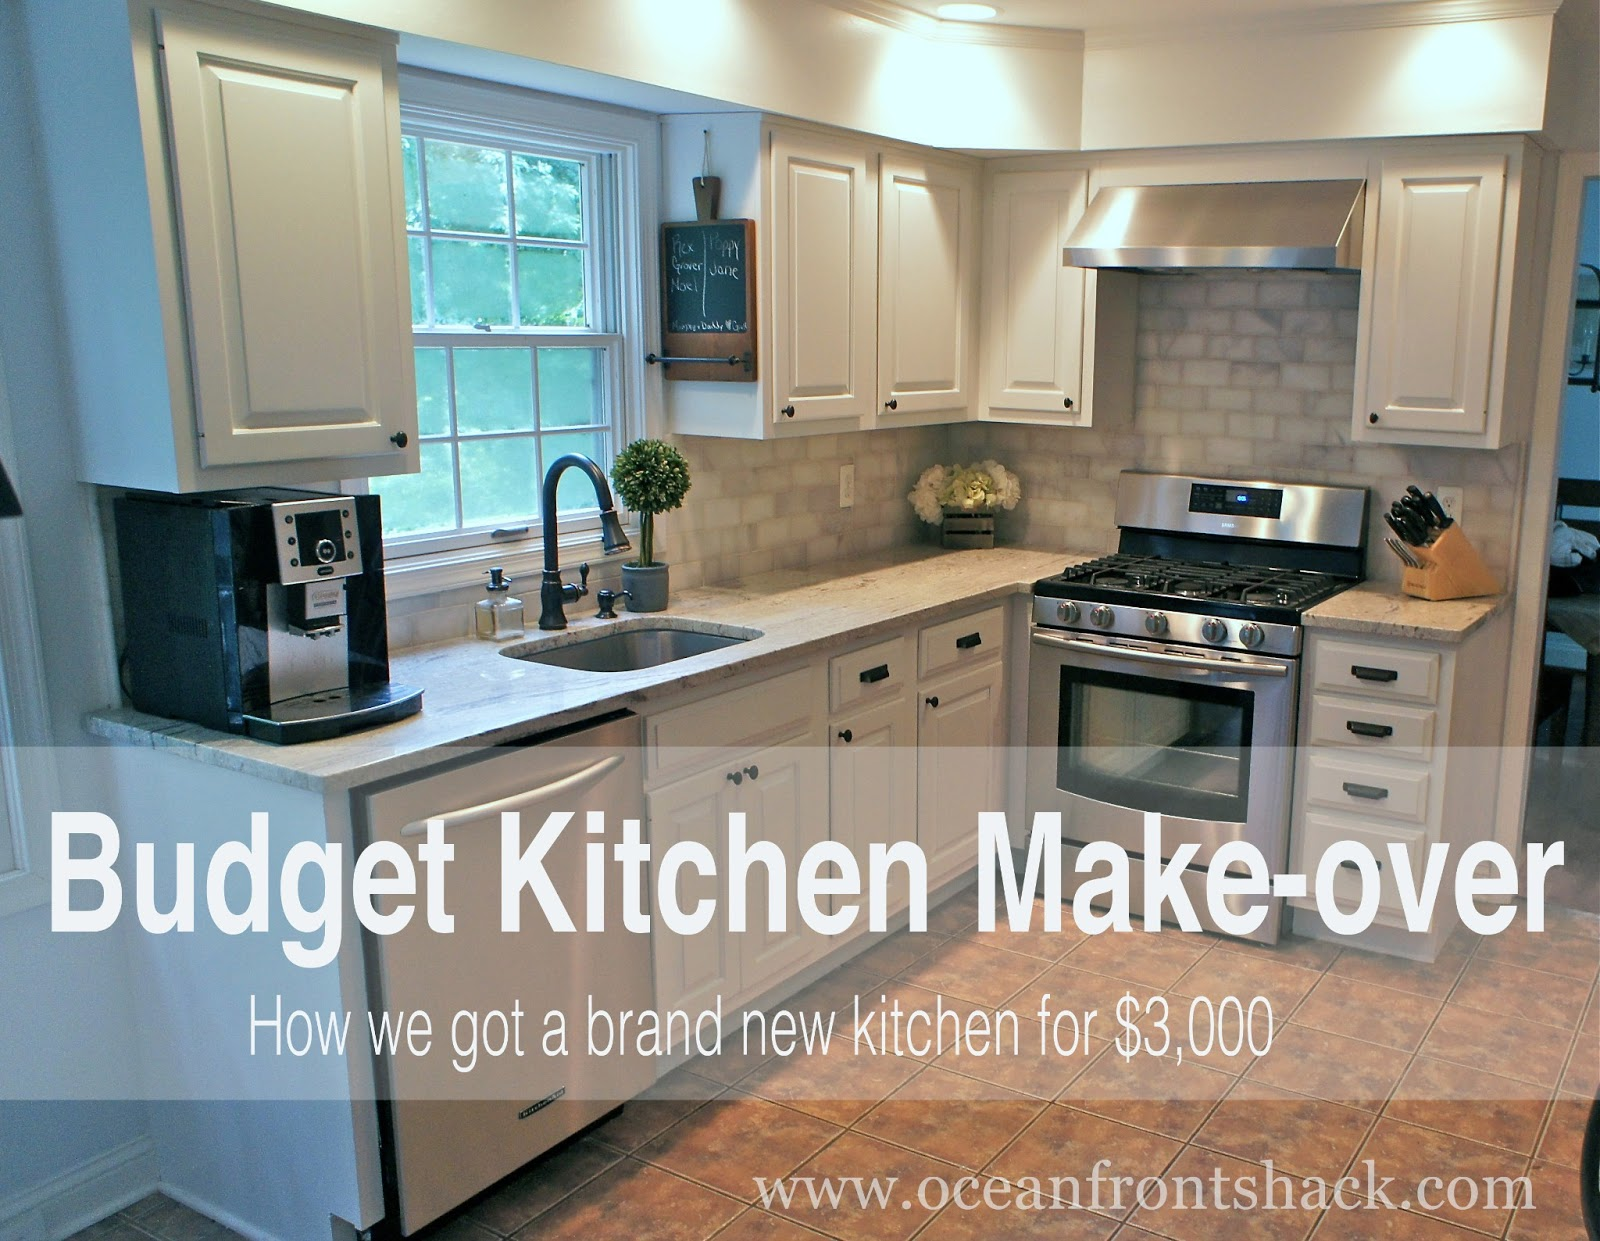 Budget kitchen makeover ocean front shack for Cheap house renovation ideas